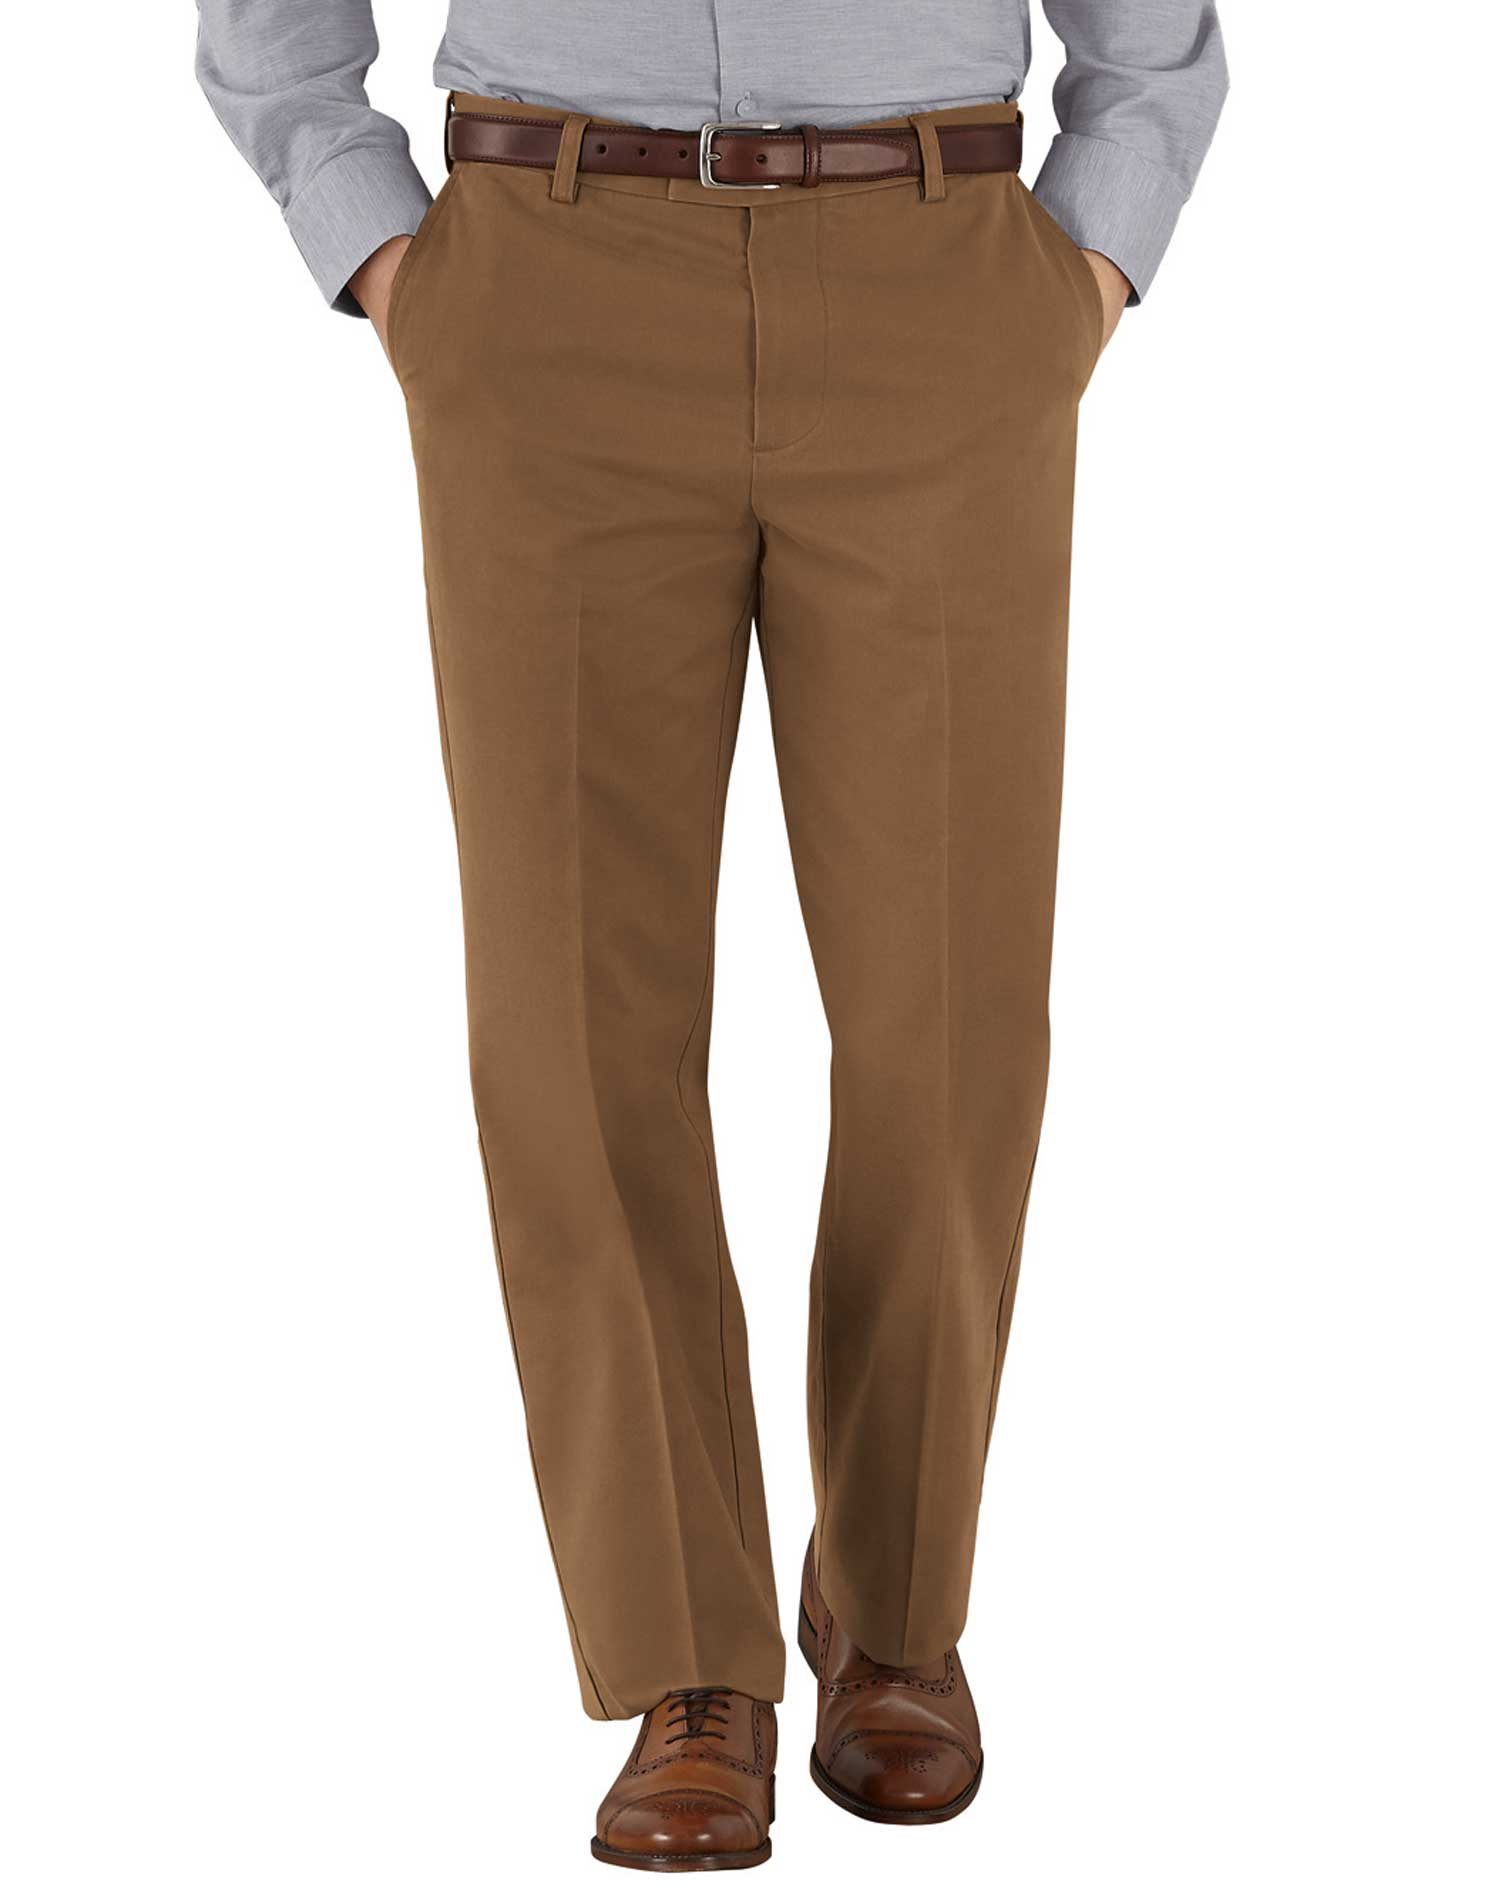 Camel Classic Fit Flat Front Non-Iron Cotton Chino Trousers Size W32 L30 by Charles Tyrwhitt